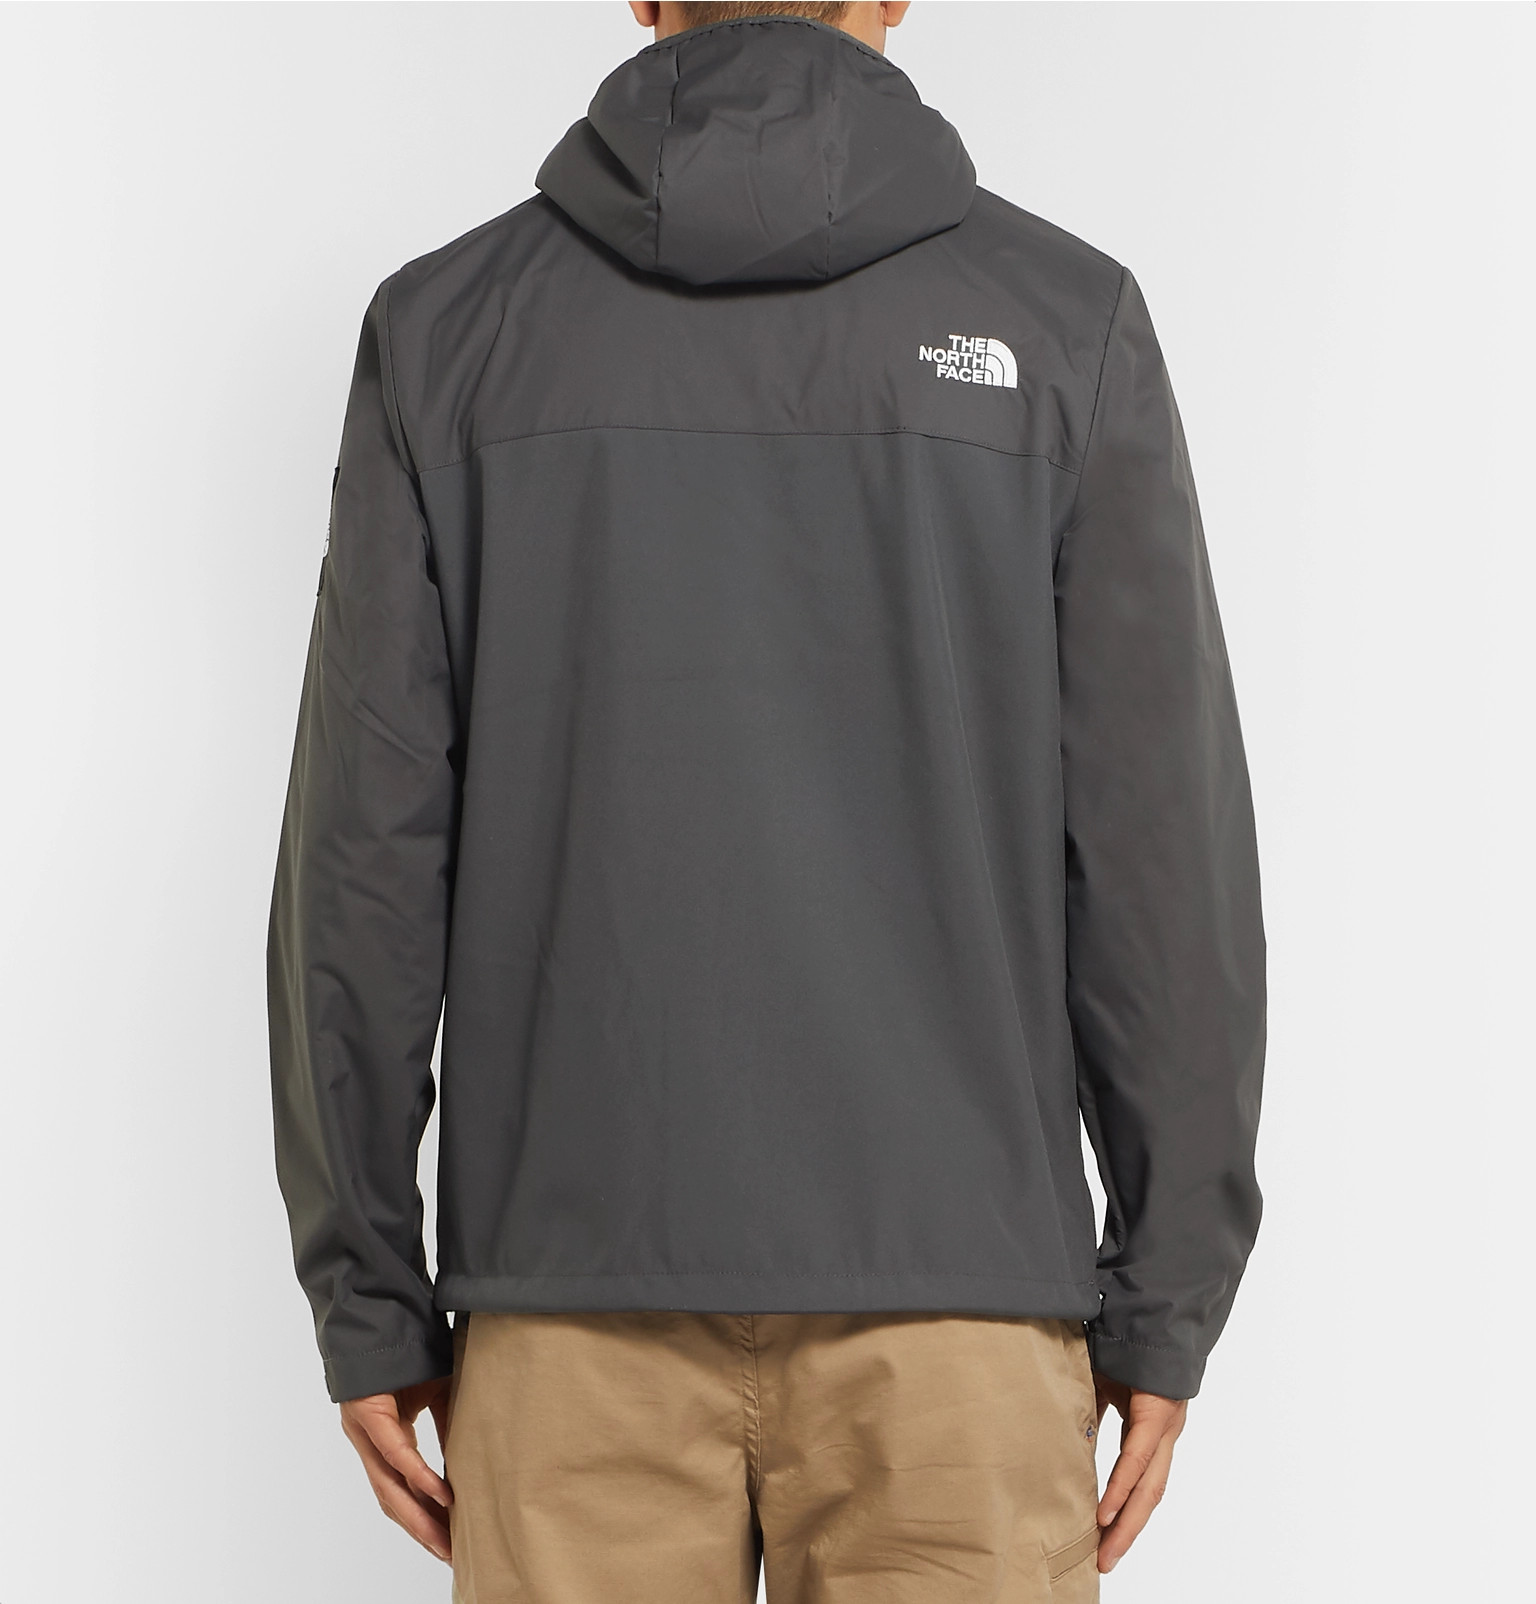 The Hooded Peak Jacket Facewest North Shell r7wCrz